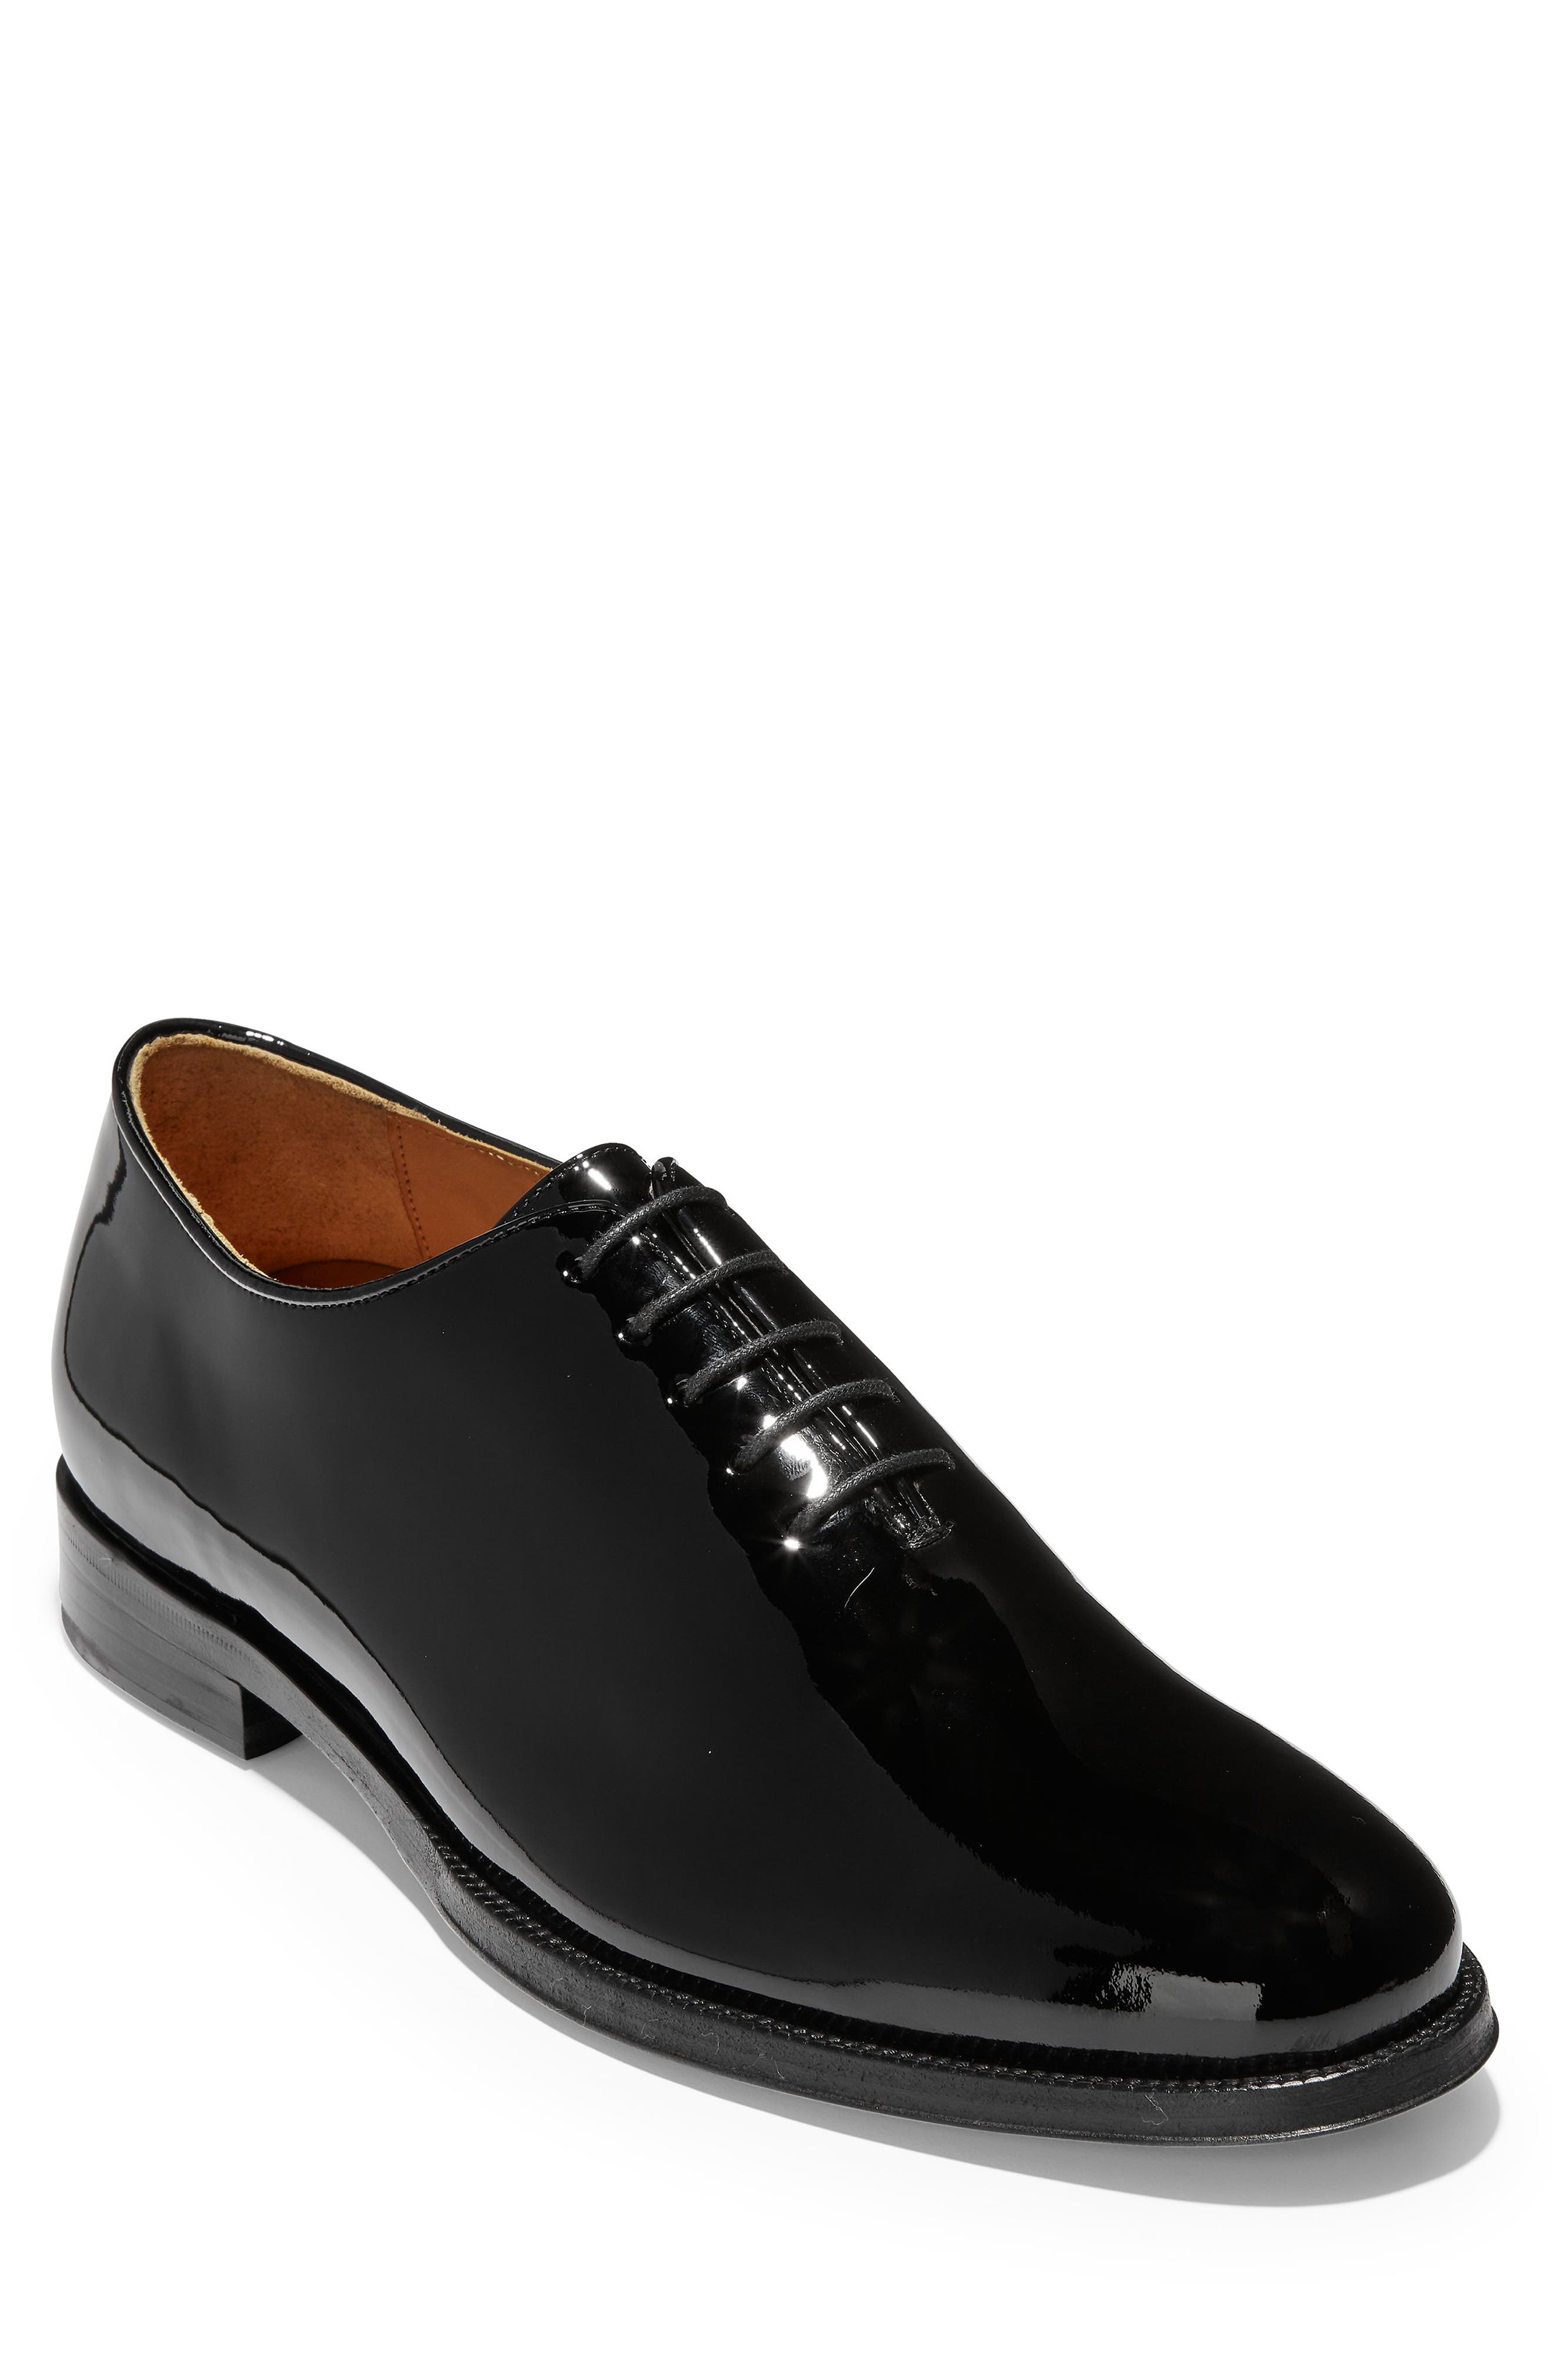 American Classics Grammercy Whole Cut Shoe,                             Main thumbnail 1, color,                             BLACK PATENT LEATHER